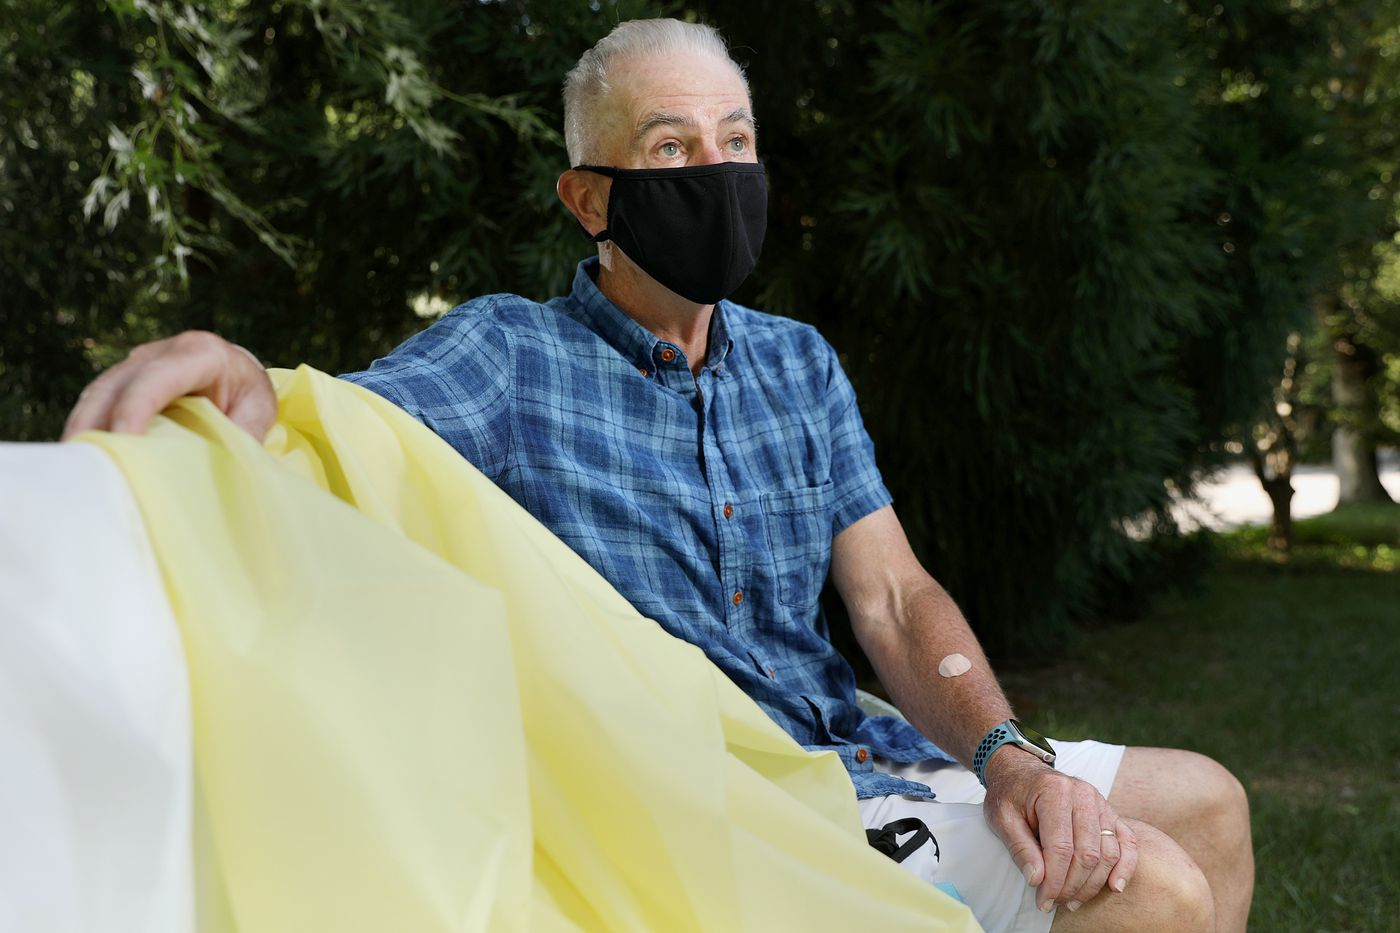 Ed Gribbin, who runs an apparel consultancy firm and is president of the Americas Apparel Producers Network, wears a washable face mask at his home in Merion Station. Due to the coronavirus pandemic, Gribbin is now focused on coordinating the manufacturing of isolation gowns and face masks.